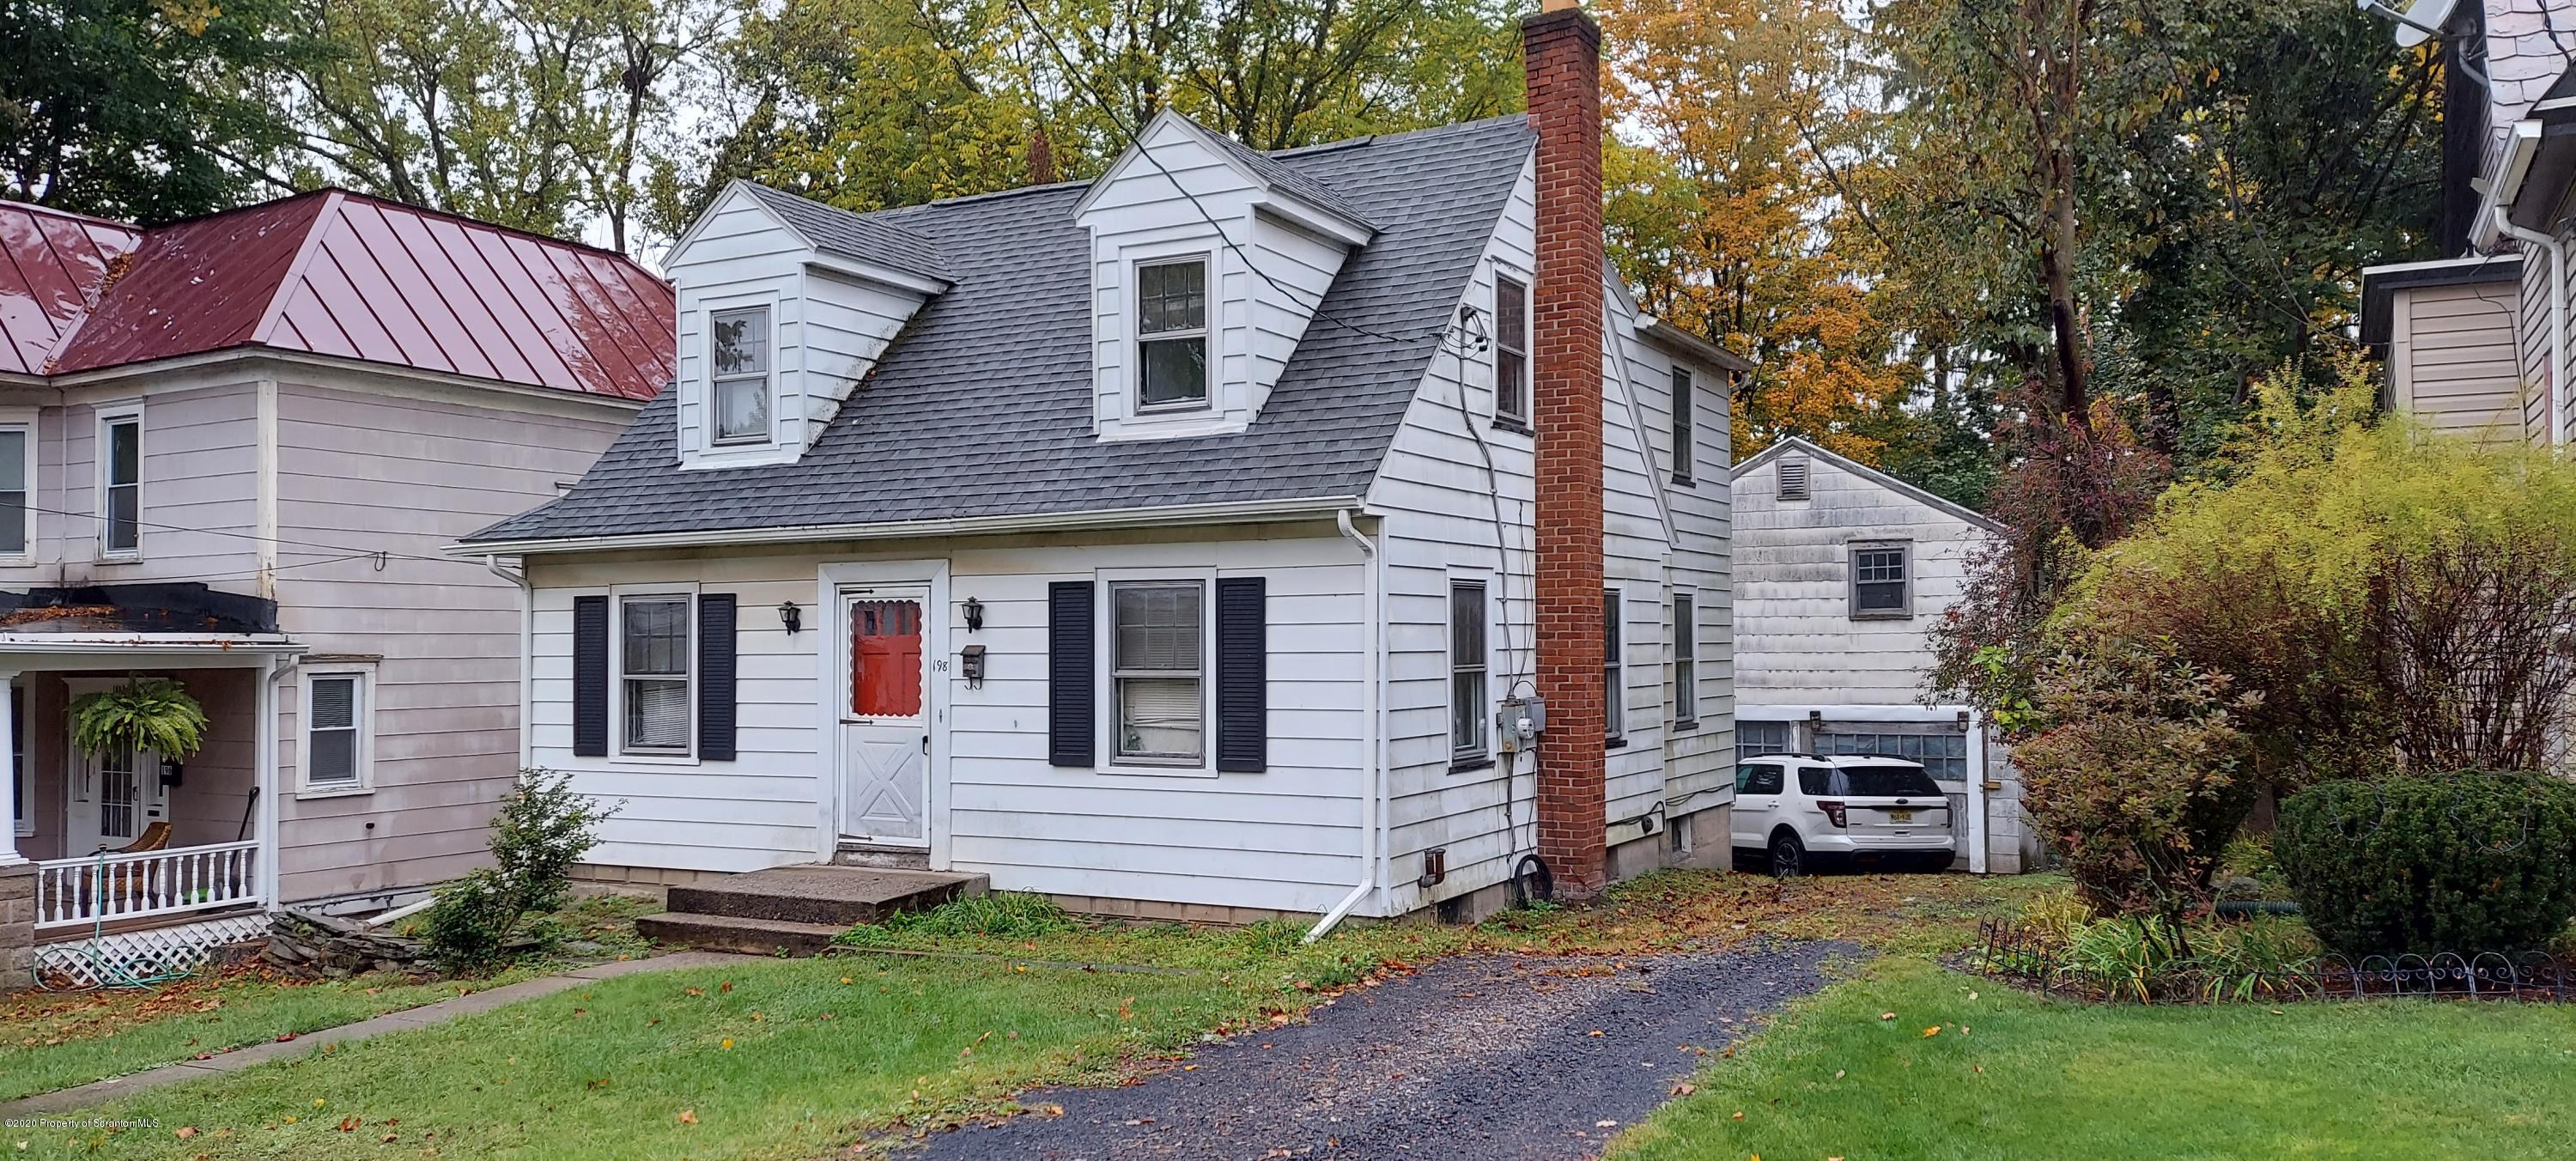 198 Analomink Street, East Stroudsburg, Pennsylvania 18301, 3 Bedrooms Bedrooms, 8 Rooms Rooms,2 BathroomsBathrooms,Single Family,For Sale,Analomink,20-4524